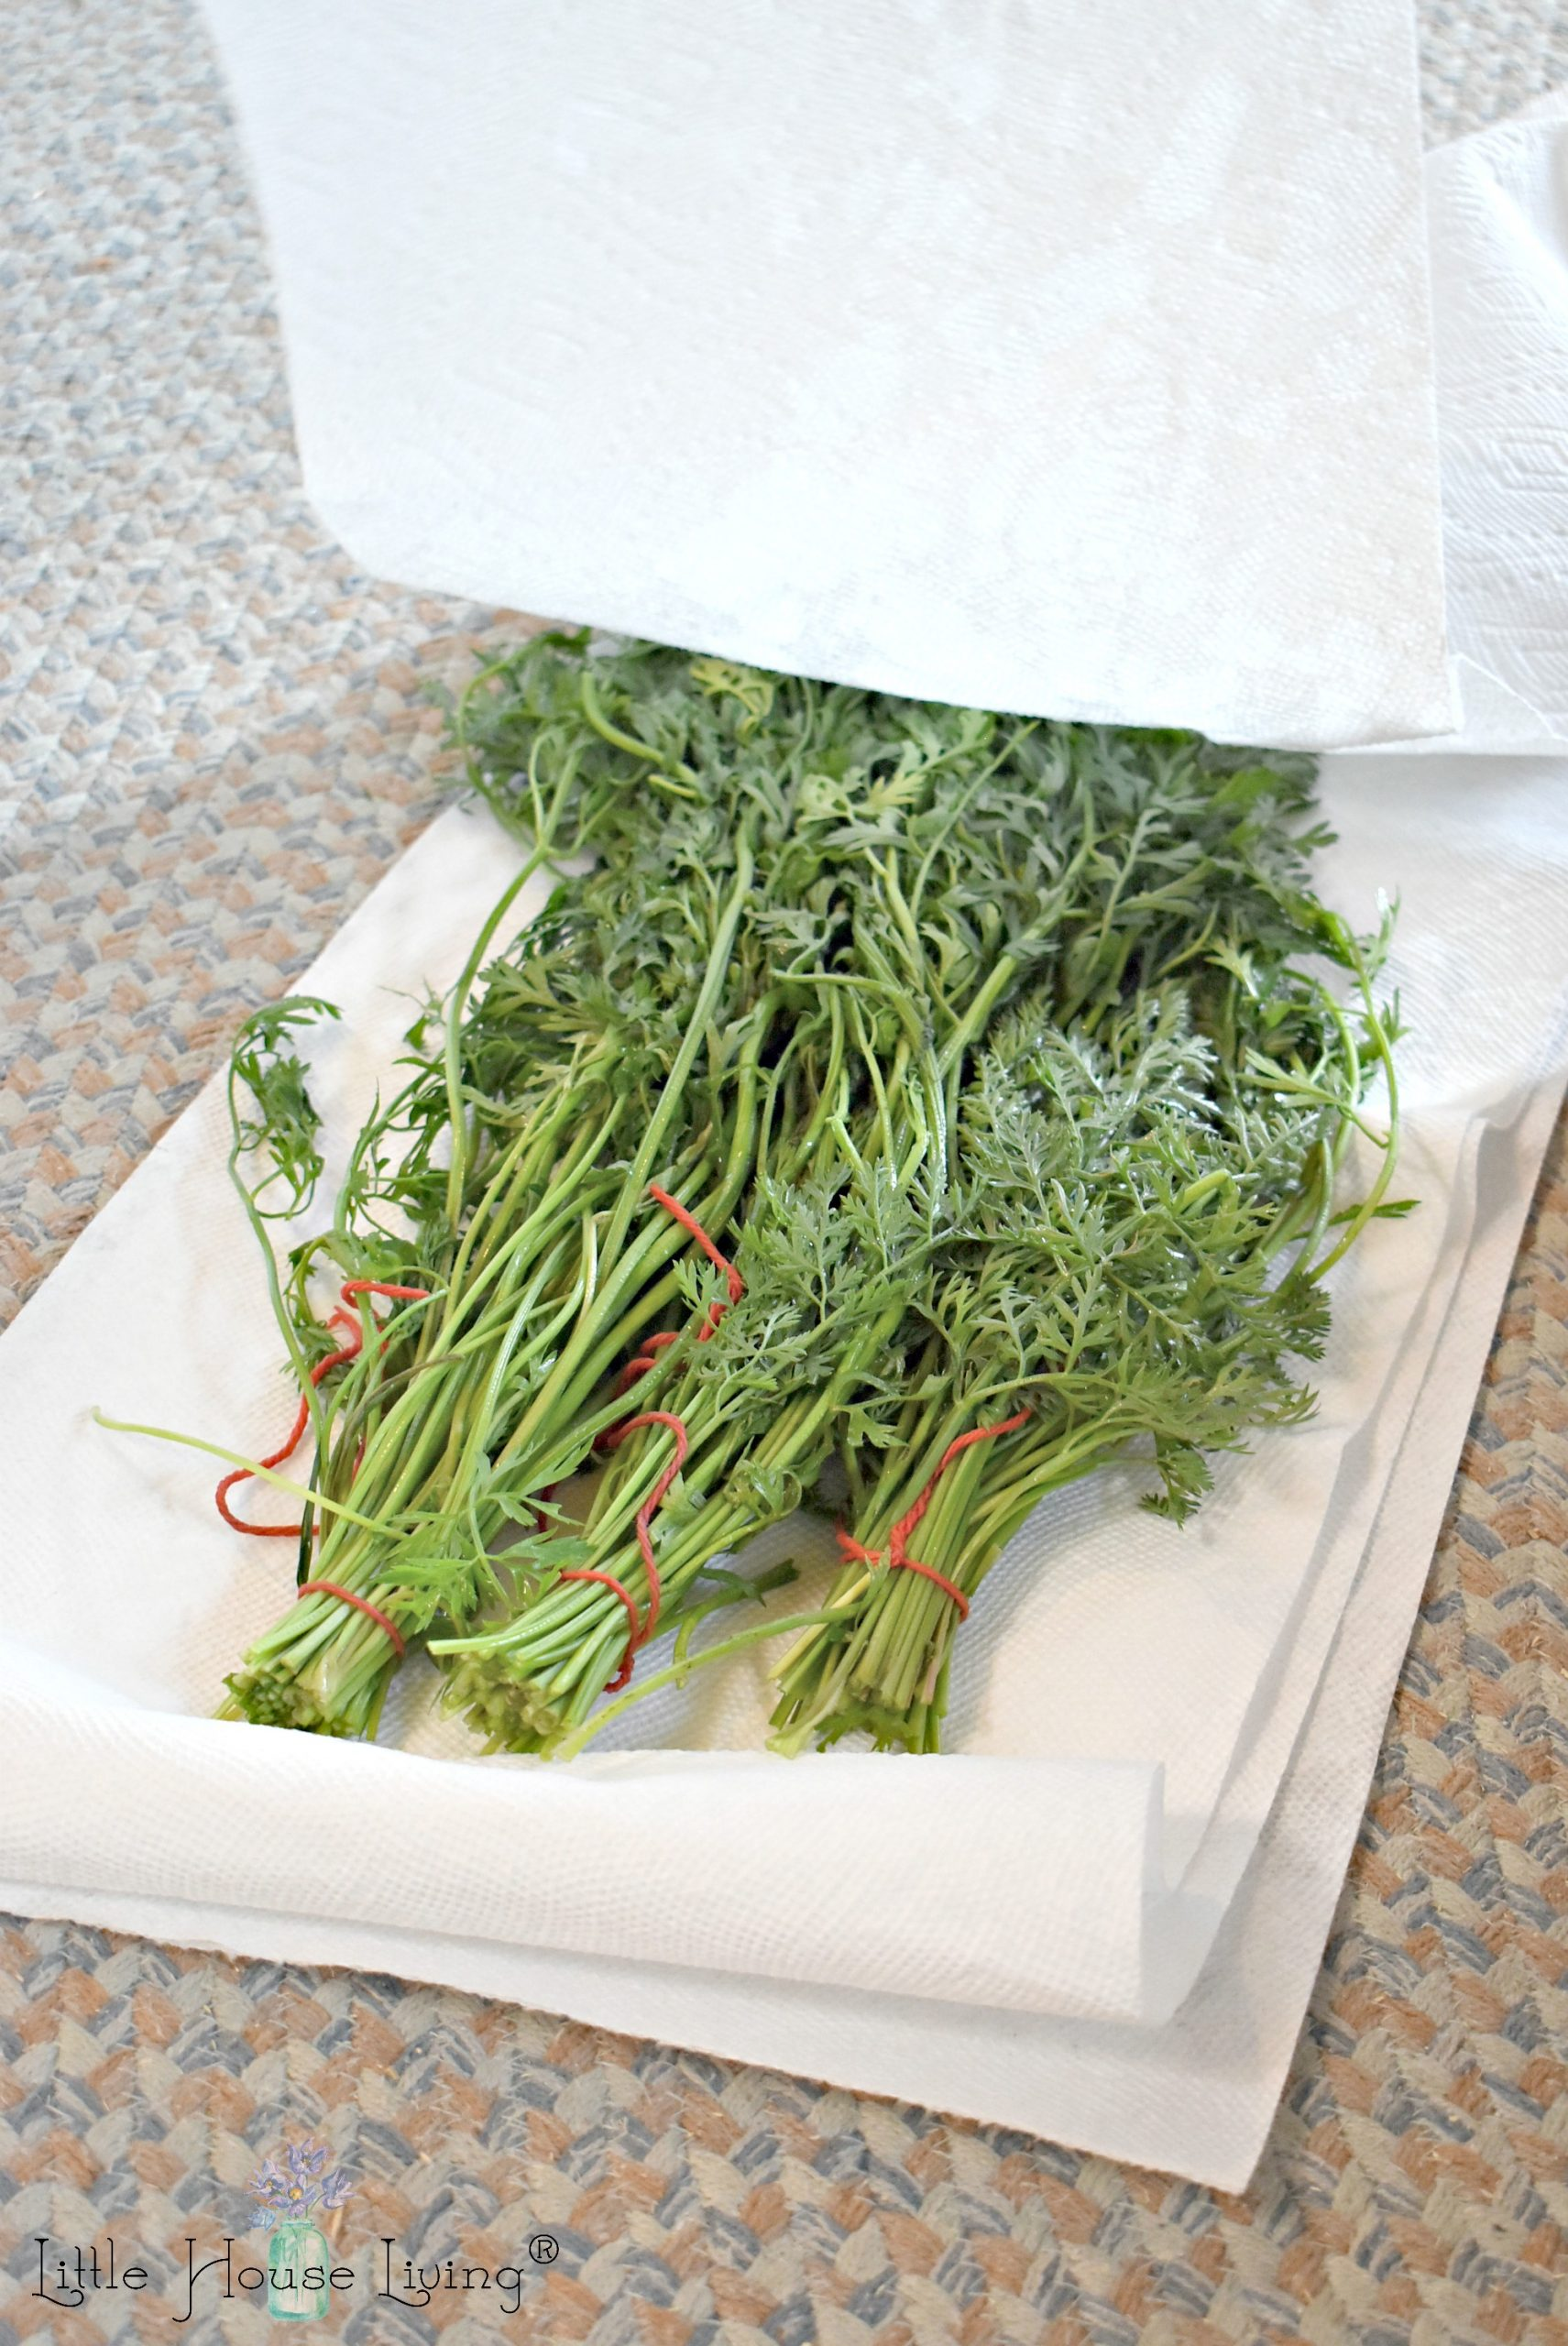 Drying Carrot Greens